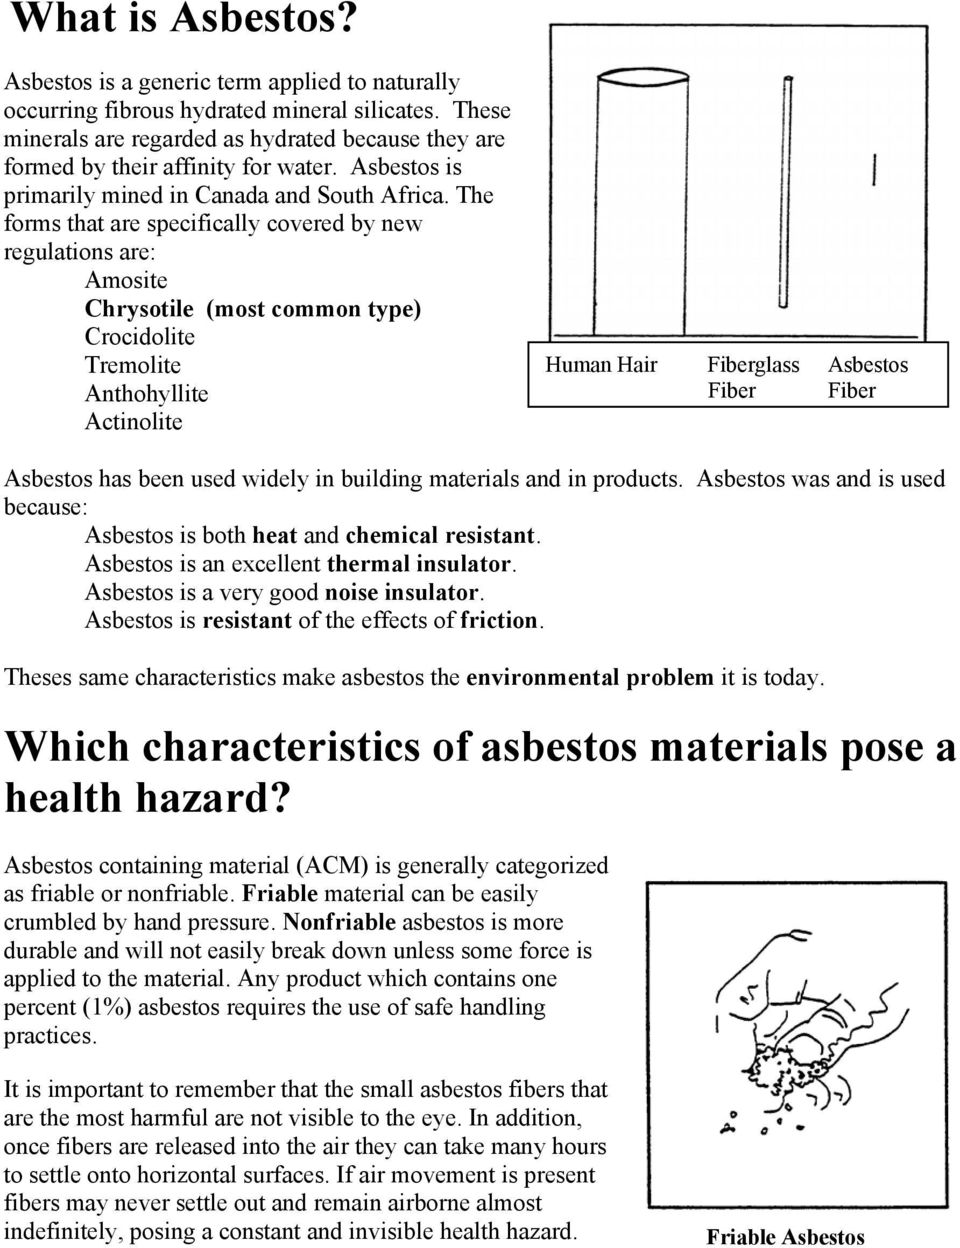 The forms that are specifically covered by new regulations are: Amosite Chrysotile (most common type) Crocidolite Tremolite Anthohyllite Actinolite Human Hair Fiberglass Asbestos Fiber Fiber Asbestos